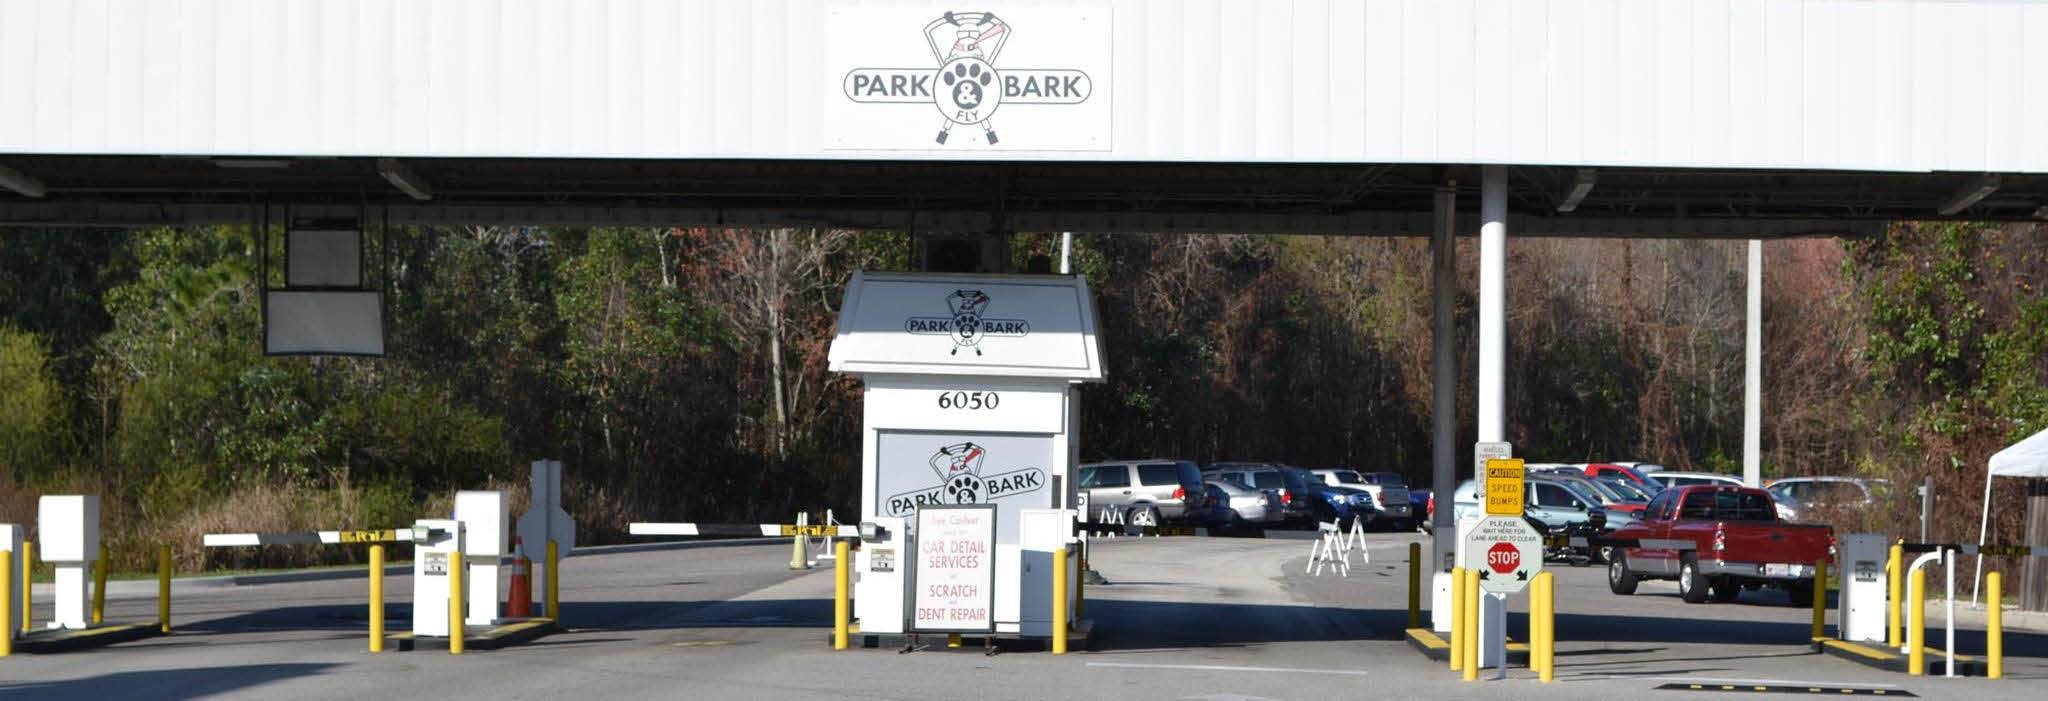 Park Bark & Fly Orlando - Off-Airport Parking banner ad